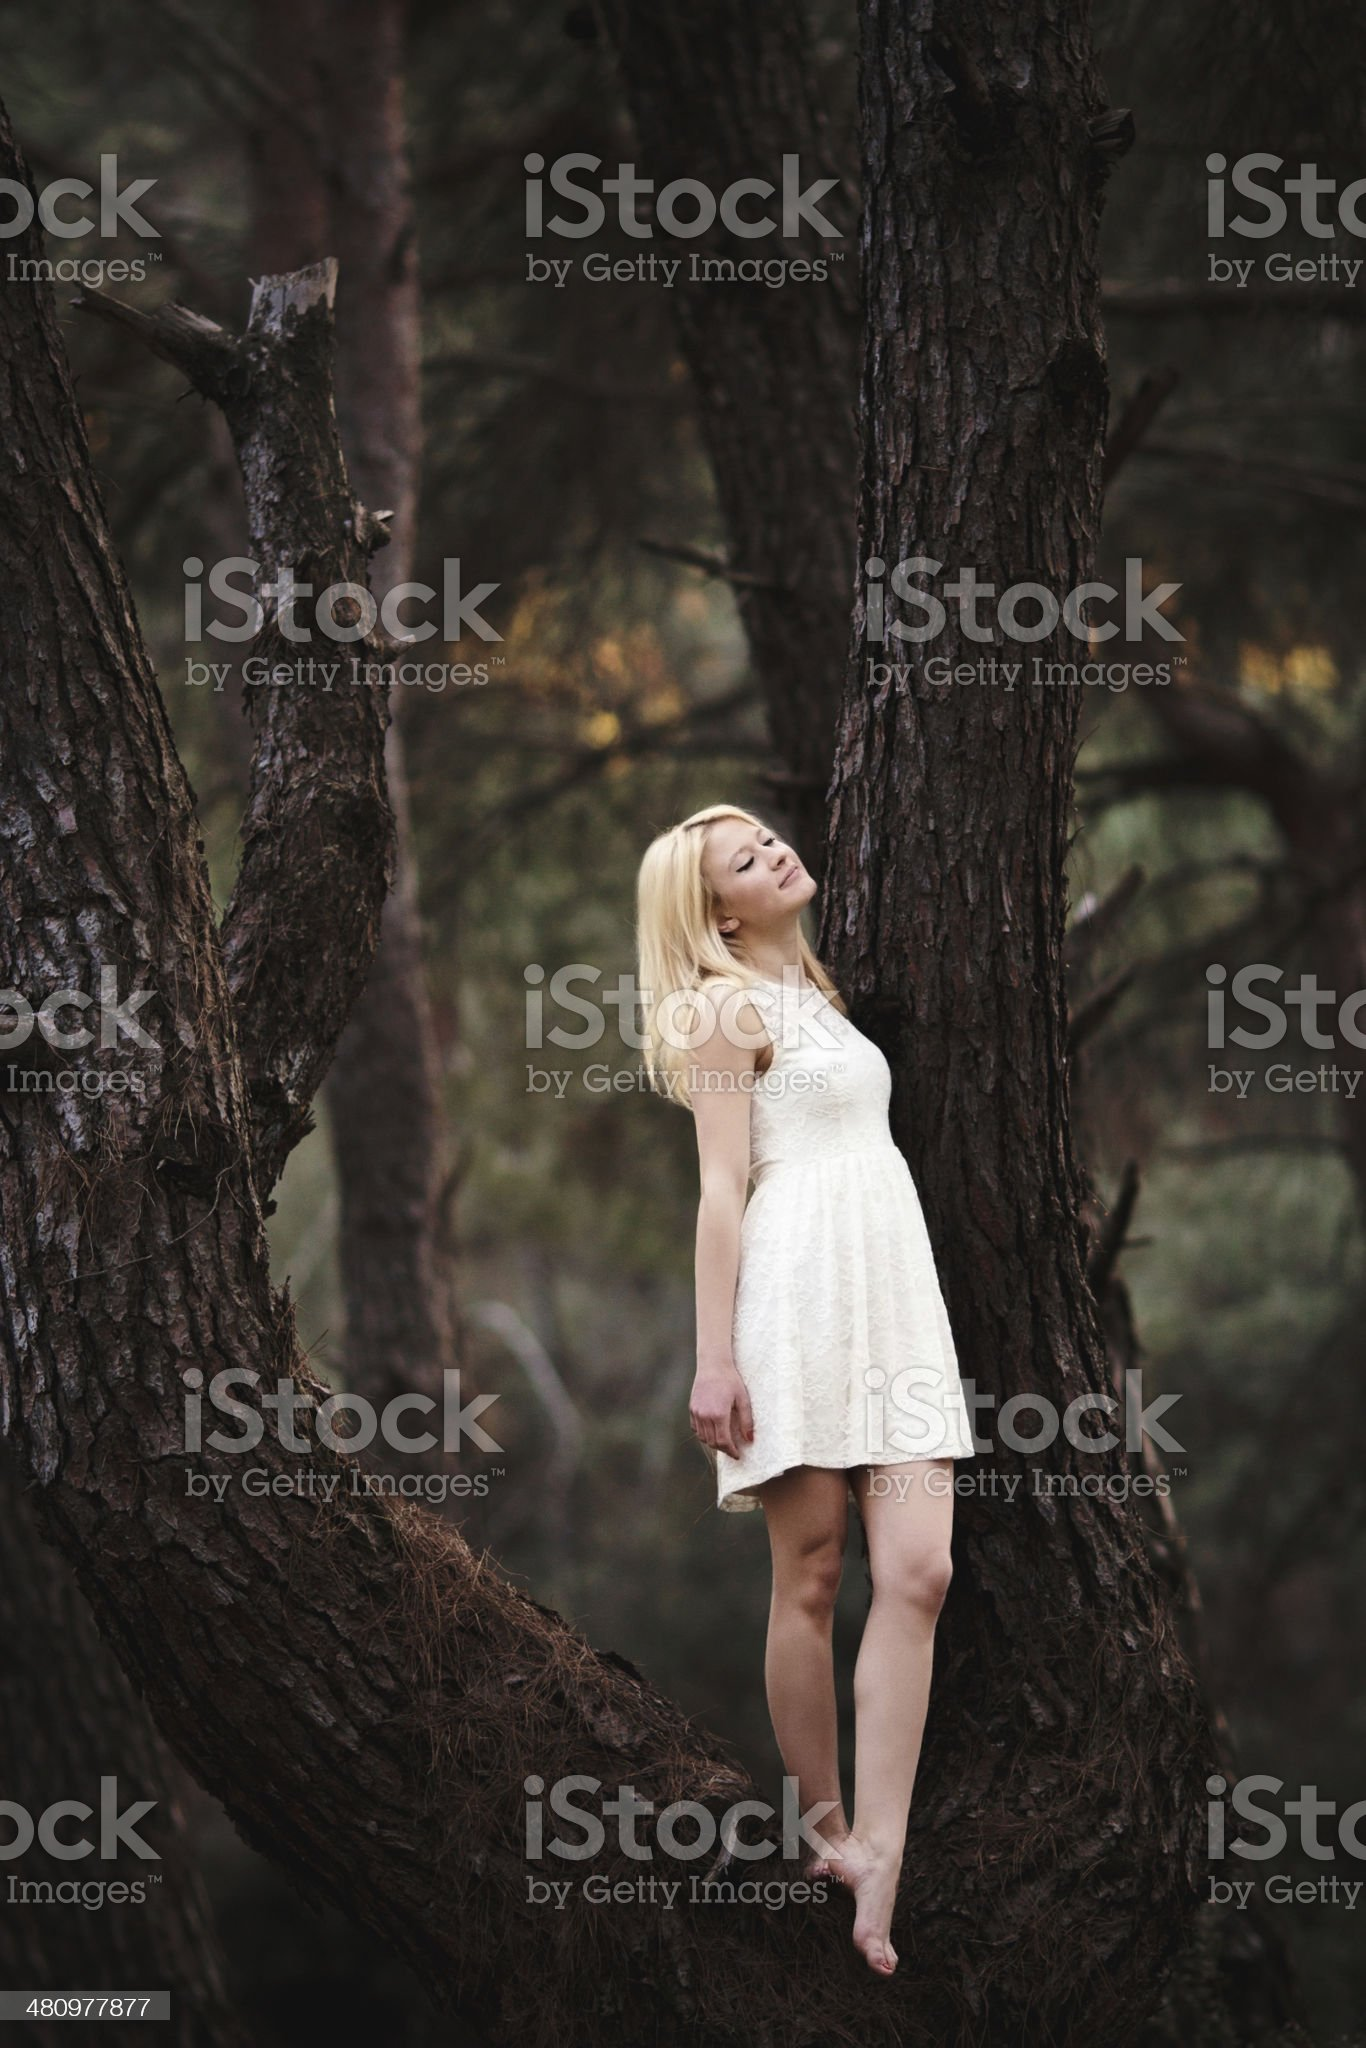 https://media.istockphoto.com/photos/beautiful-girl-in-a-forest-on-tree-picture-id480977877?s=2048x2048